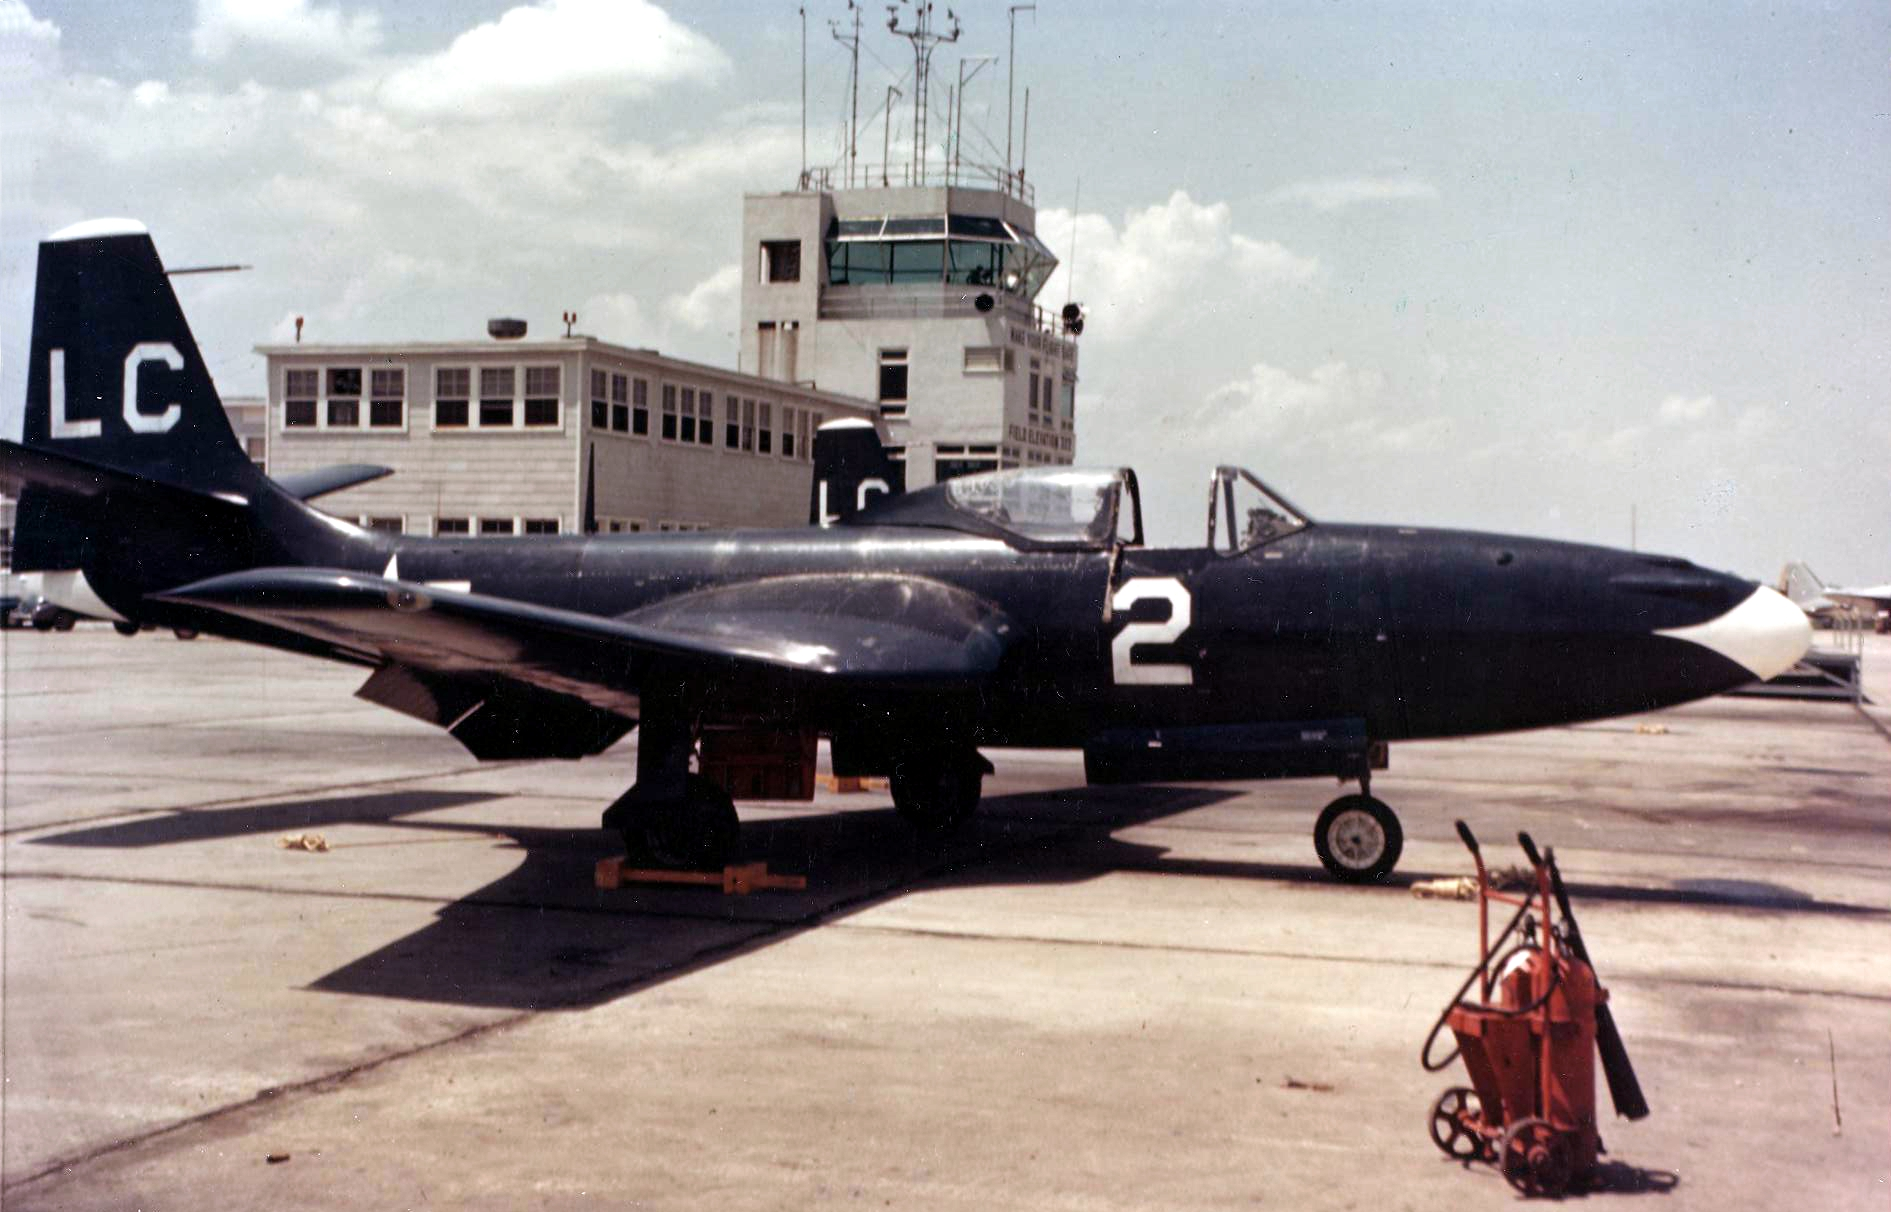 FH-1_Phantom_of_VMF-122_at_NAS_Memphis_1